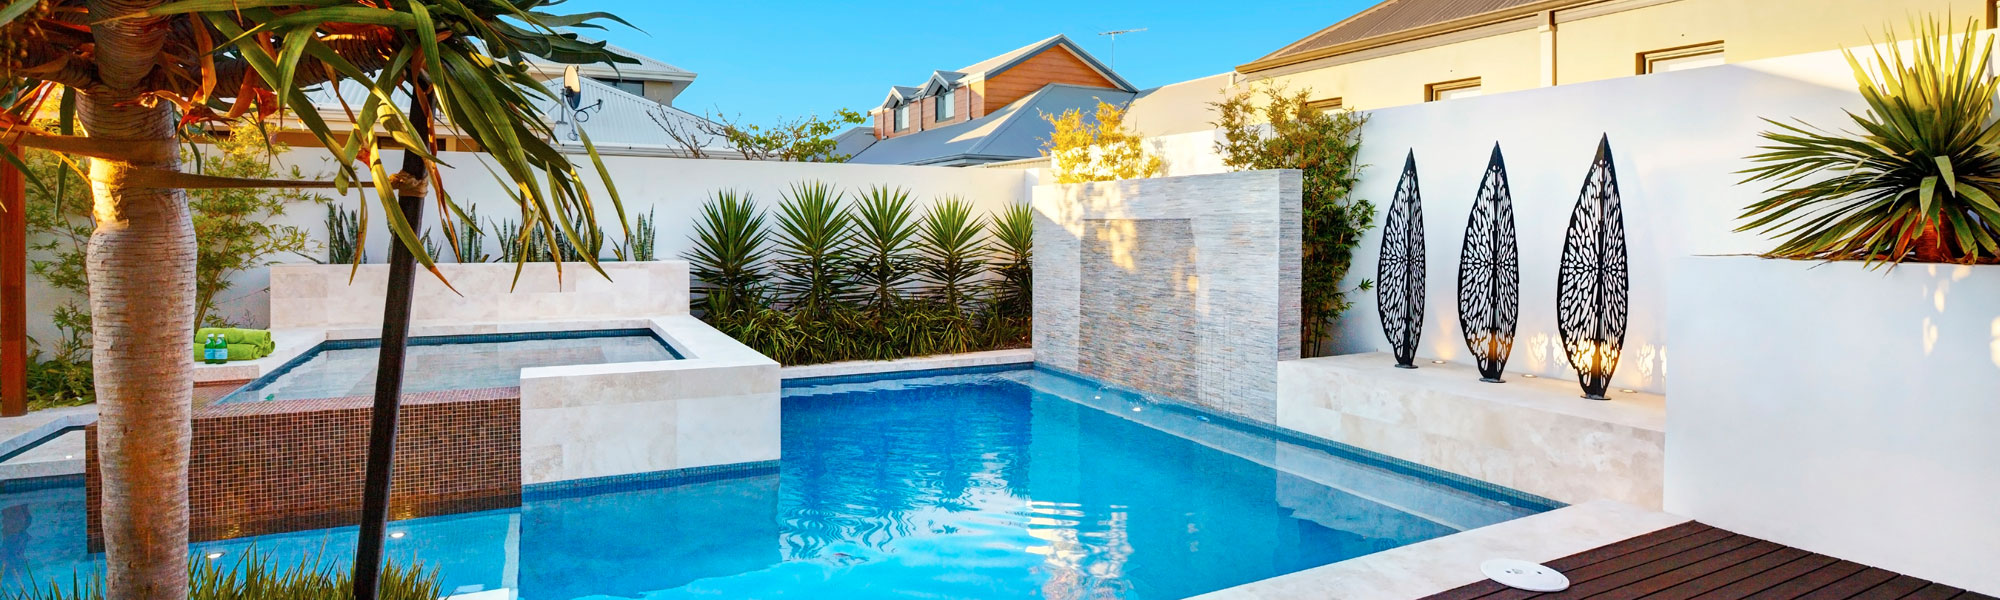 Pools outdoor living sydney home design and living for Pool design sydney